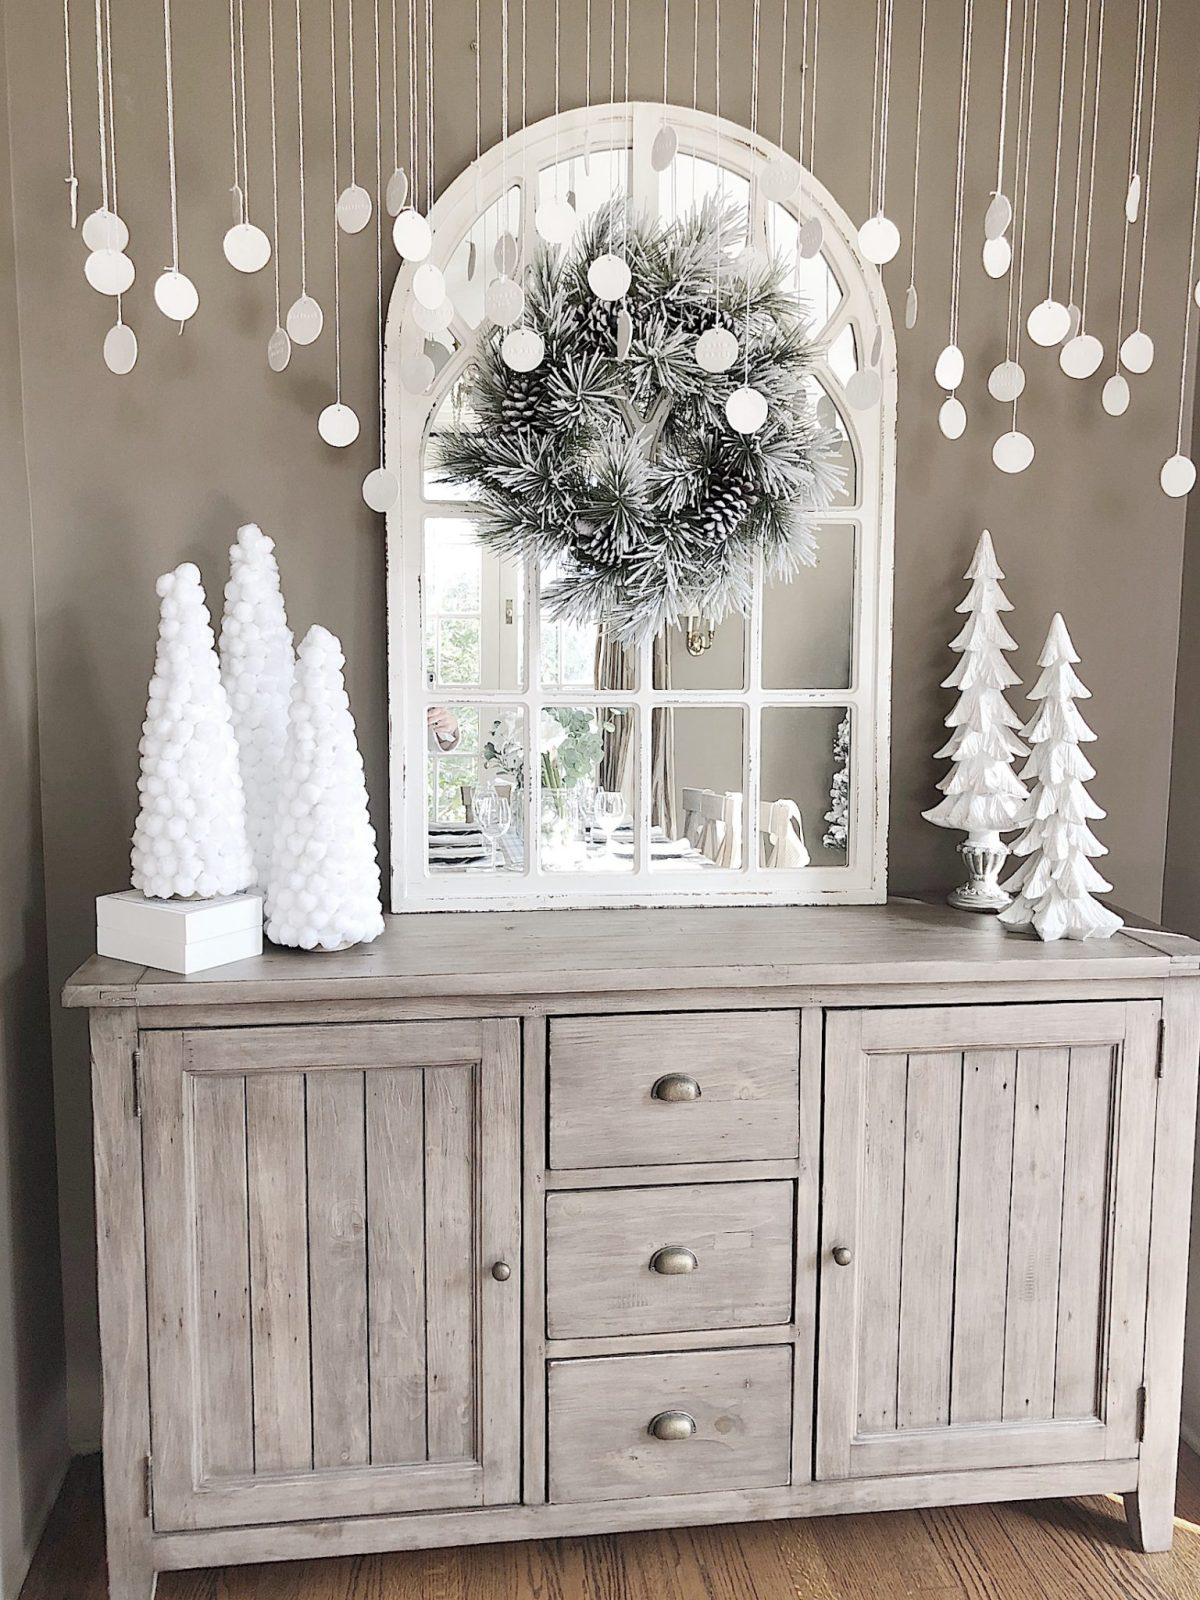 Diy Christmas Ideas How To Make Pom Pom Christmas Trees